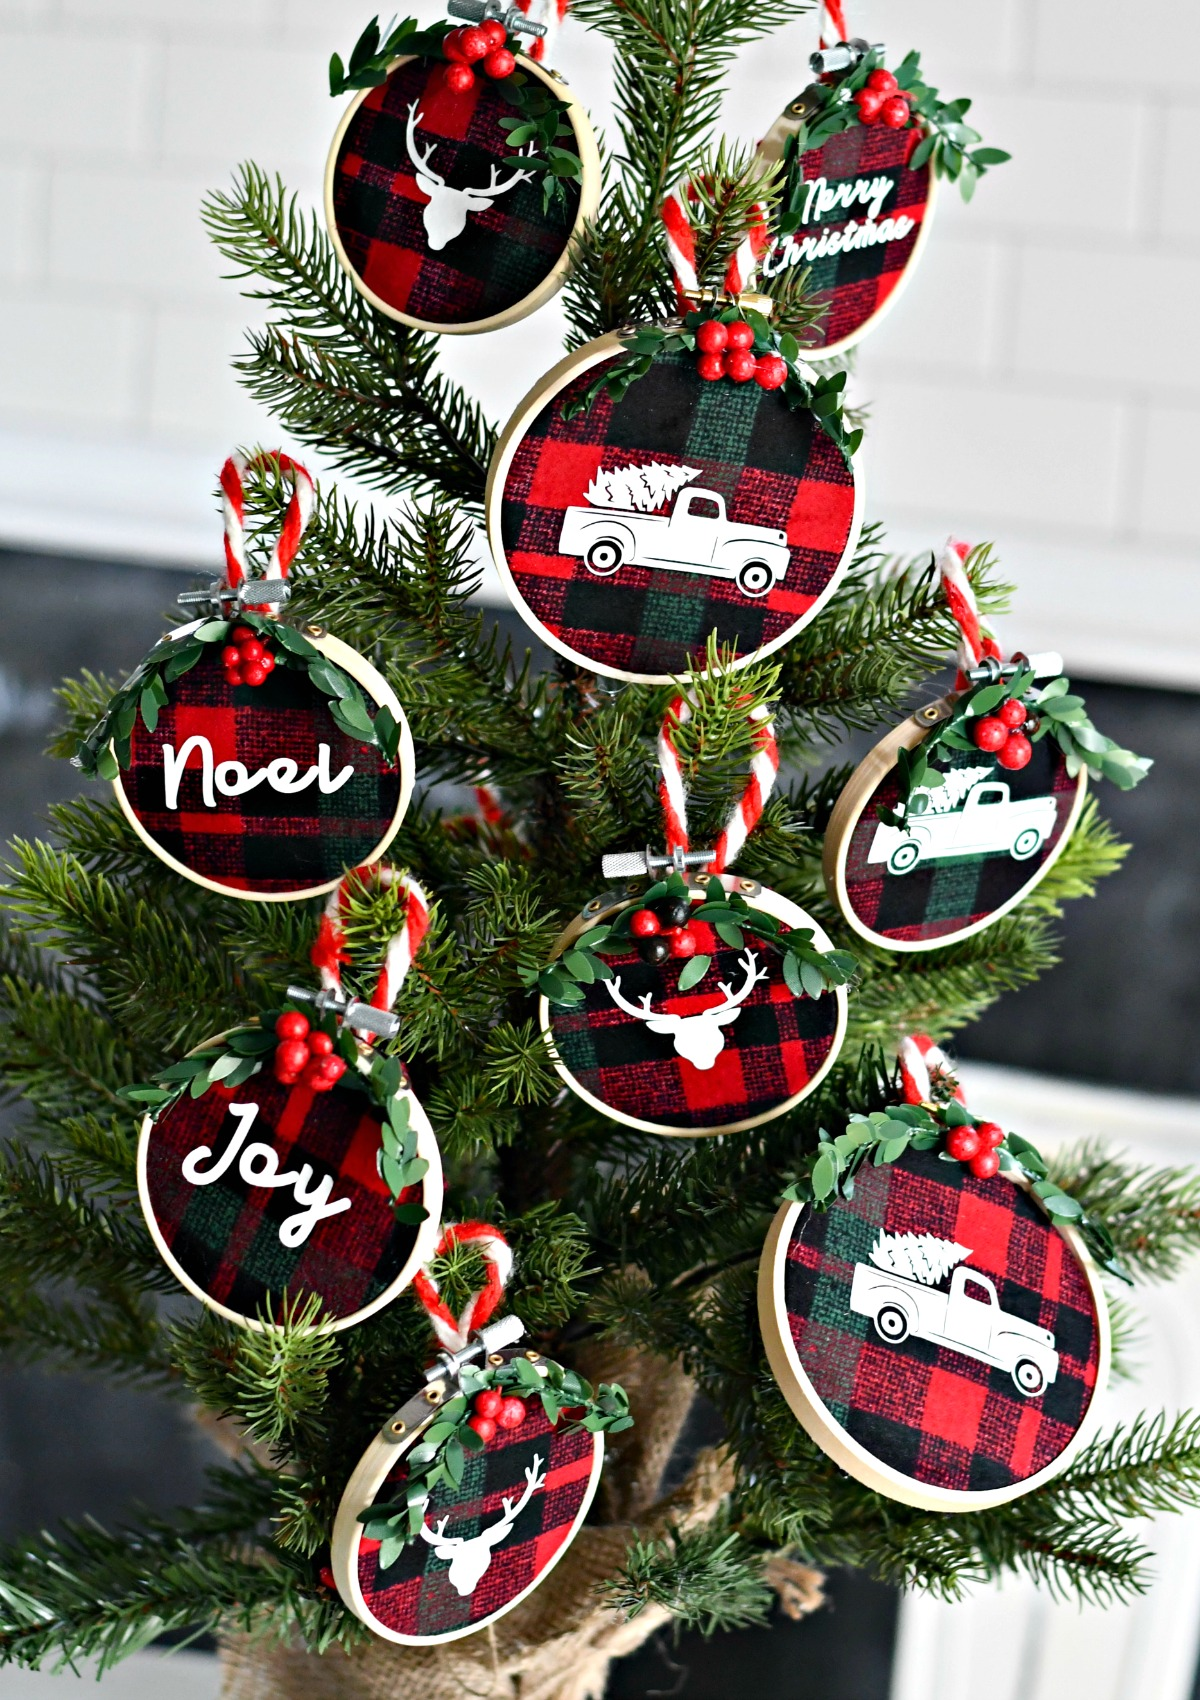 DIY Embroidery Hoop Christmas Ornaments – a small tree decorated with the ornaments